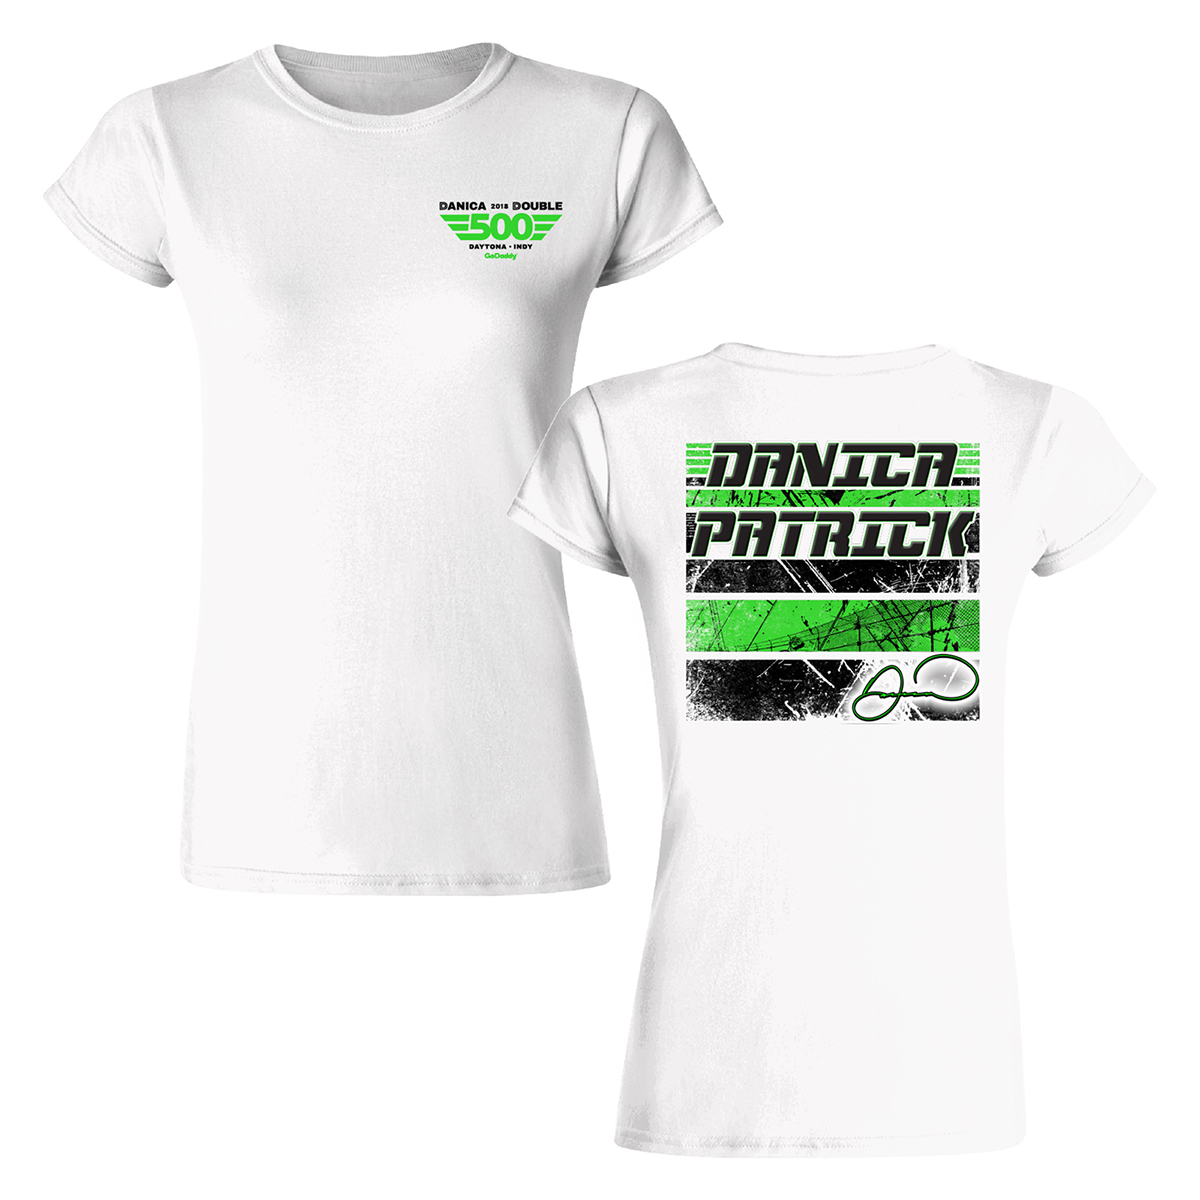 Danica Patrick 2018 Danica Double Ladies T-shirt